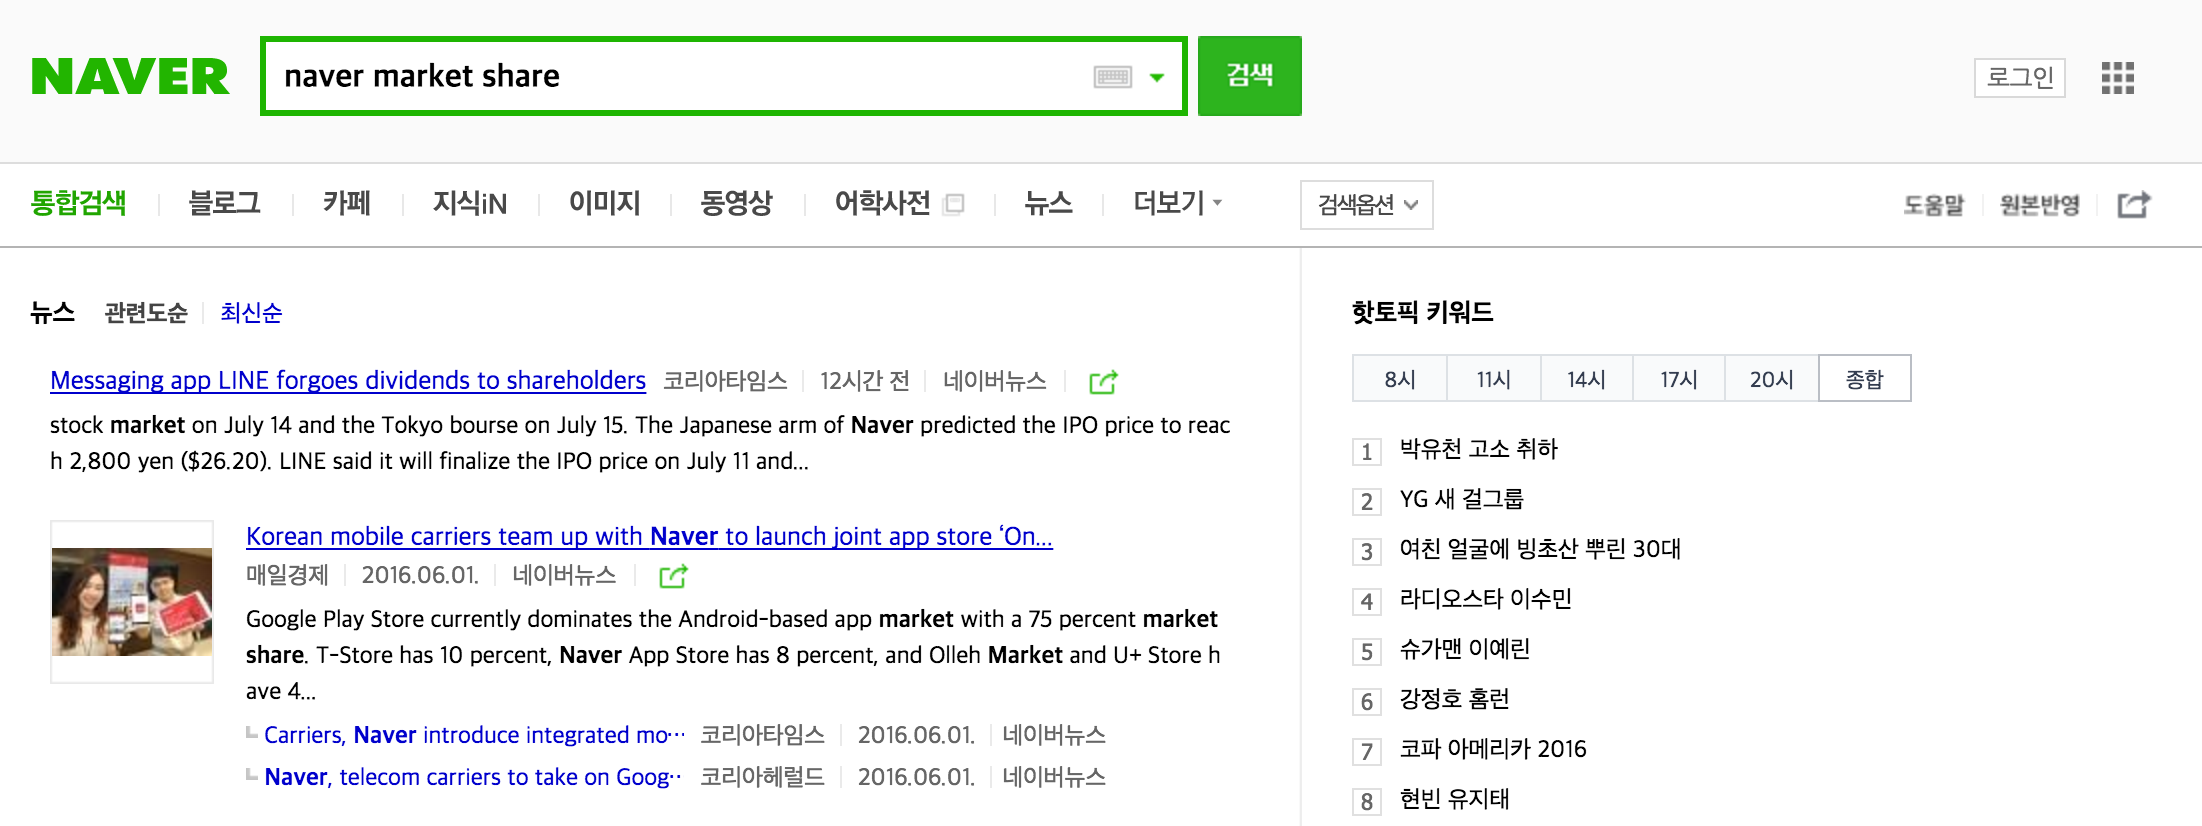 learn about naver which is a world search engine - brightedge